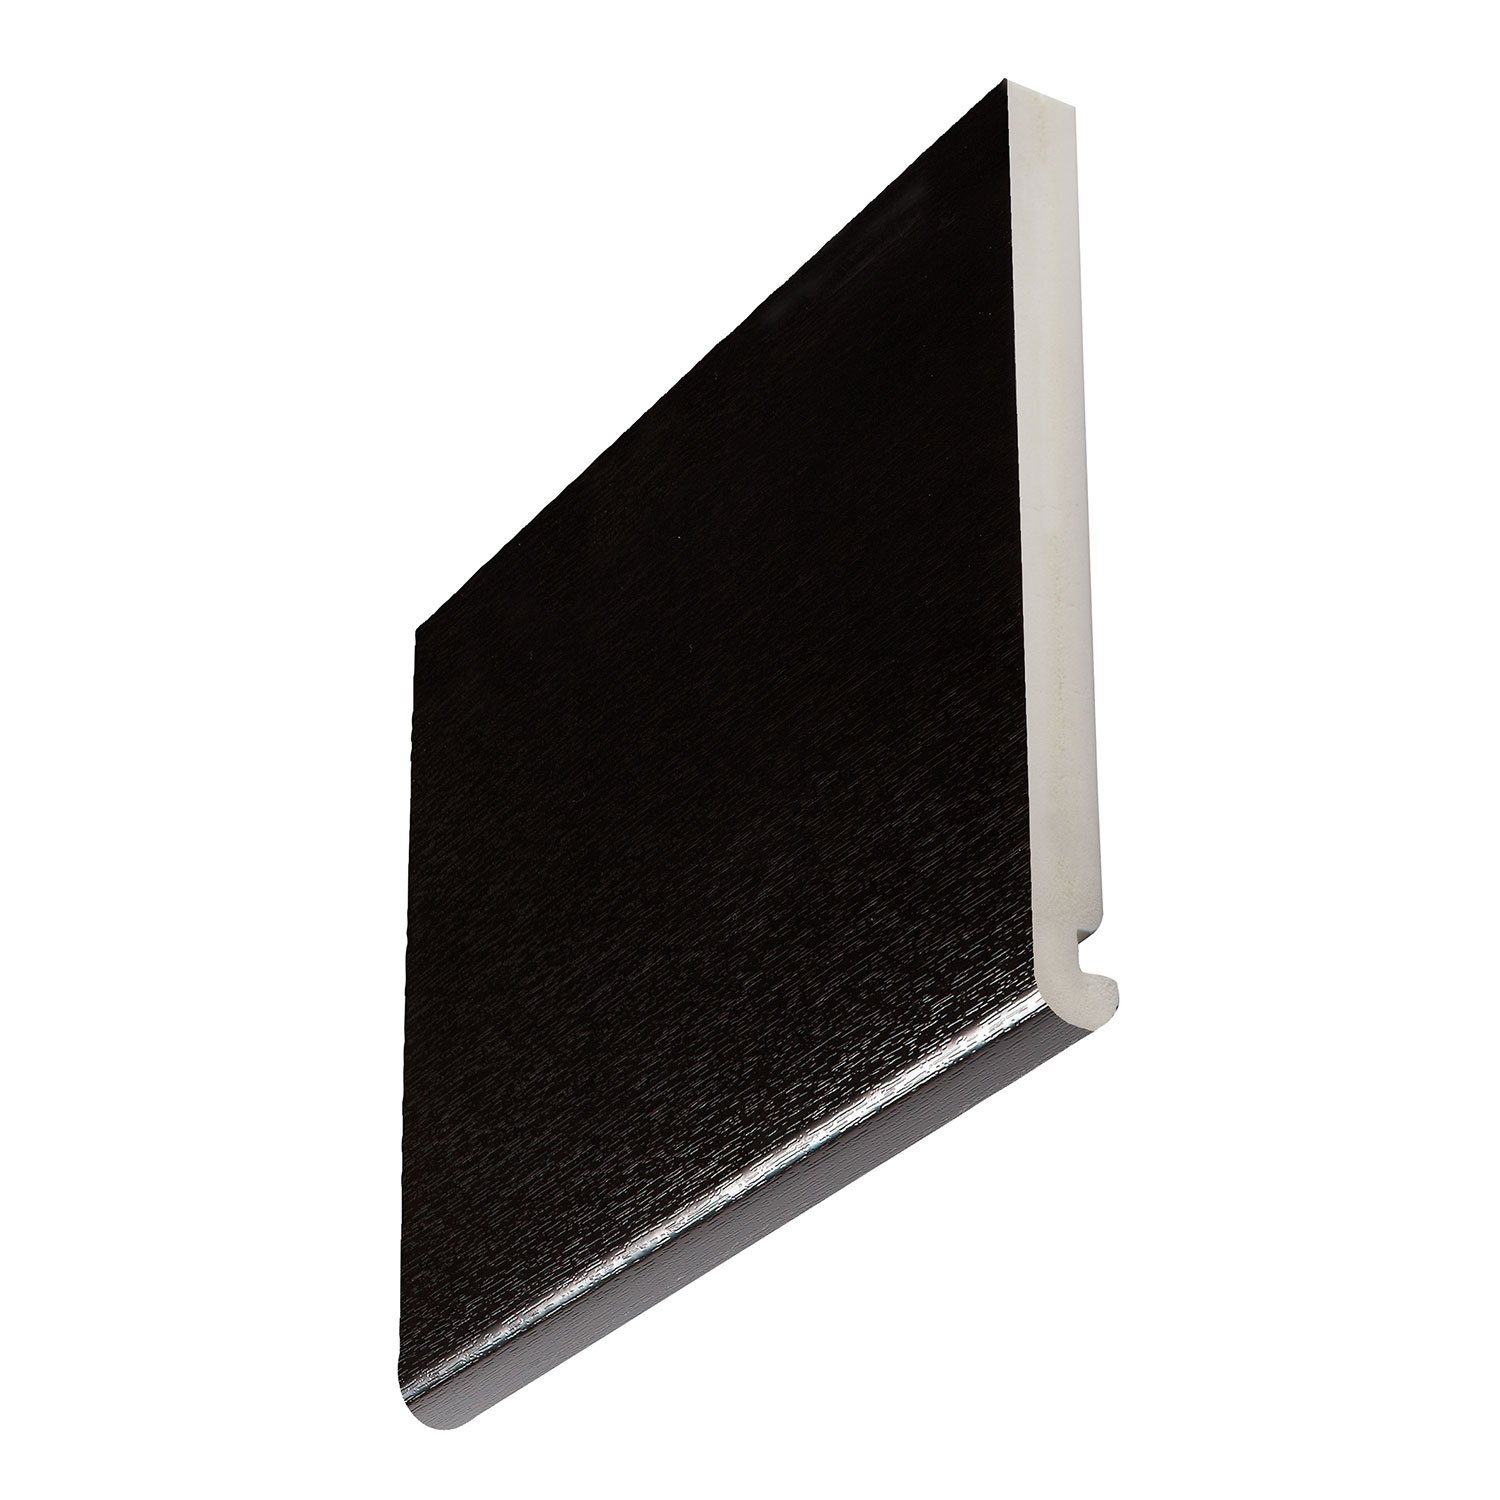 22mm Roundnose Black Ash Fascia Boards